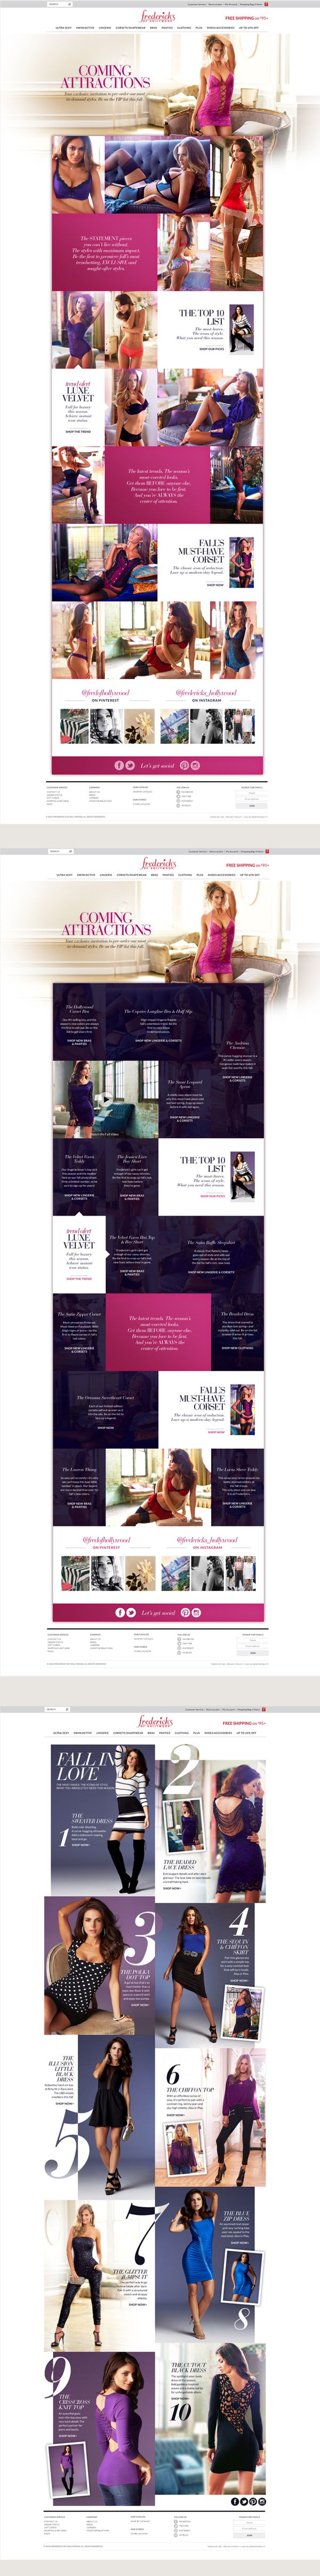 Fashion Landing Pages - Frederick's of Hollywood by Lauren Darla Carroll, via Behance